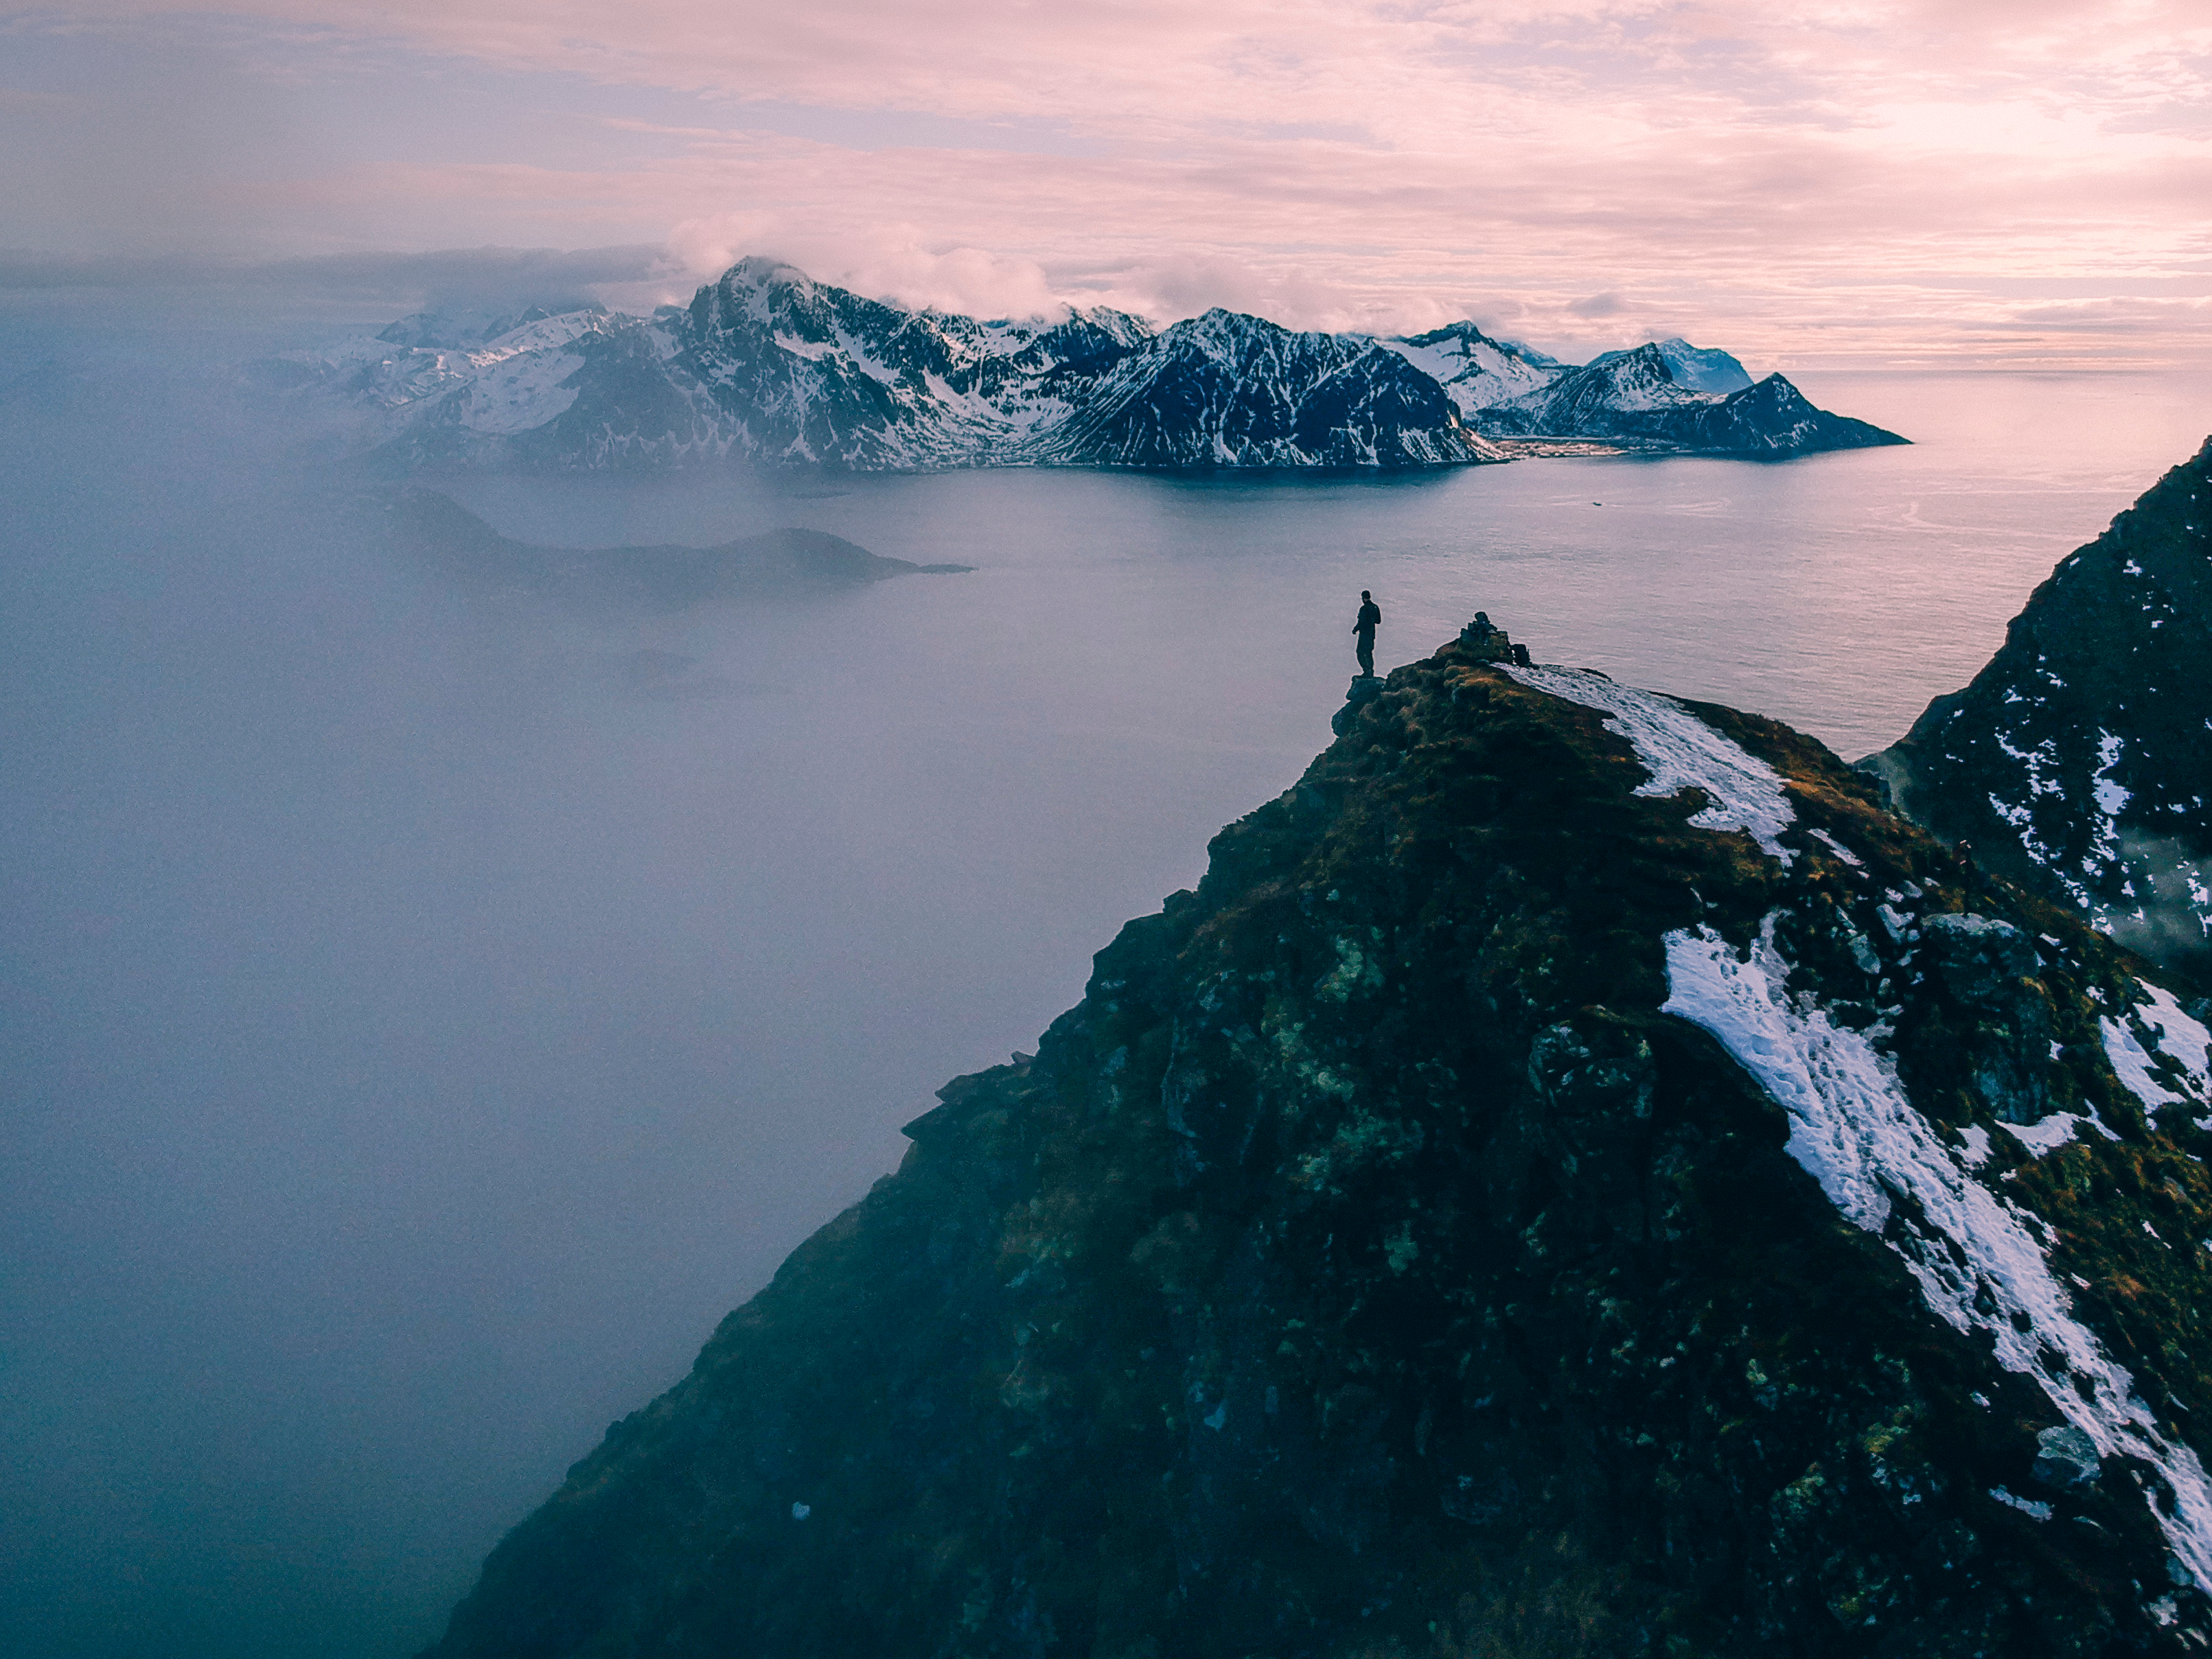 Canva - Mountain and sea view in Norway.